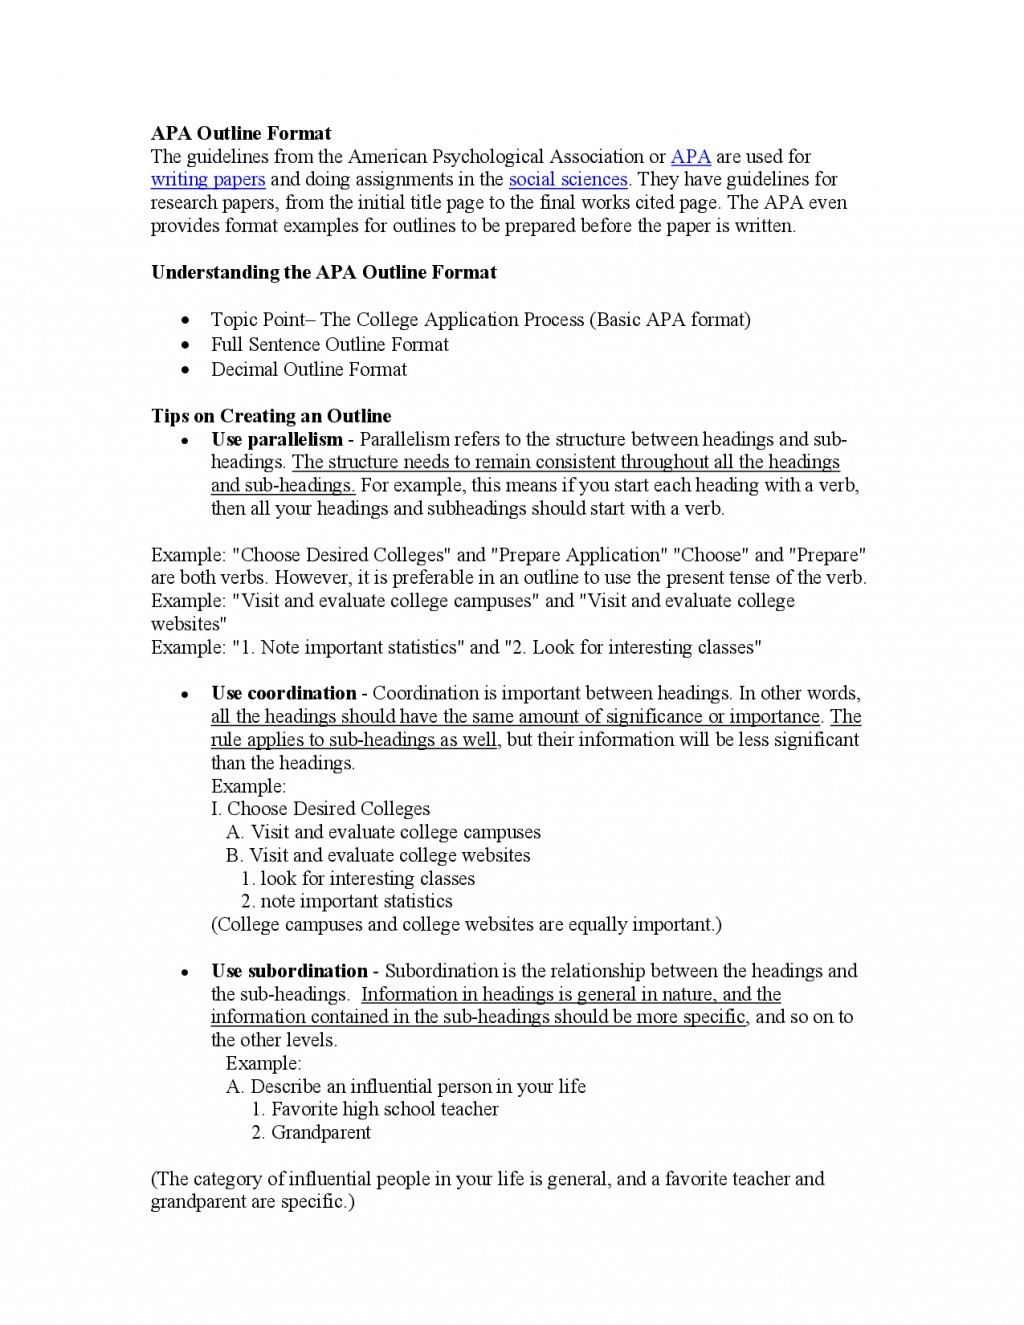 016 Research Paper 20examples Of Outlines For Papers In Apa Format Best Photos Style Outline Example Paper20 1024x1325 Dreaded Examples Sample Large